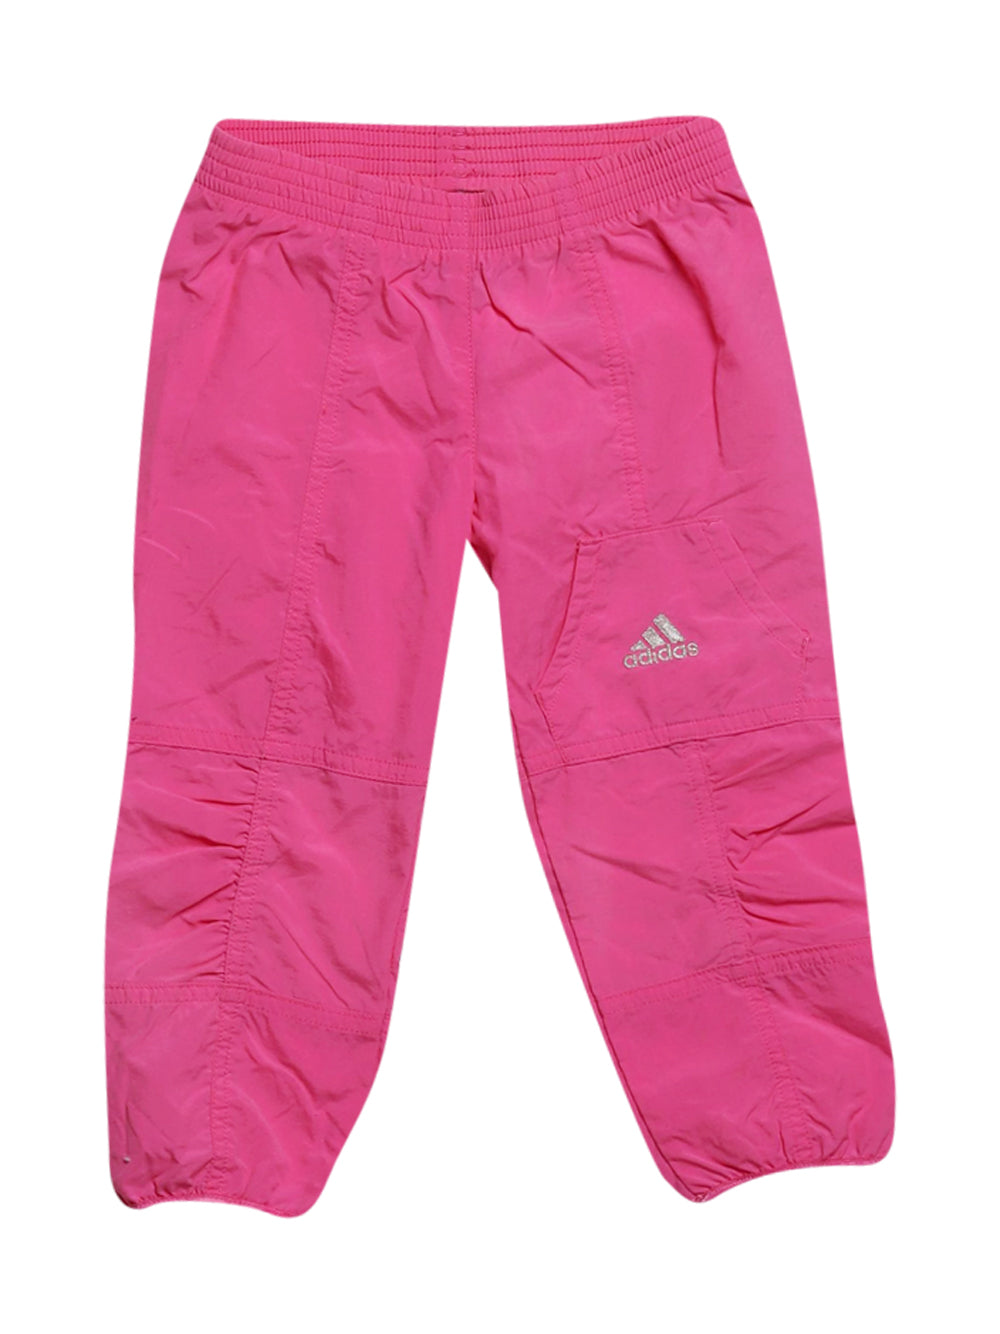 Front photo of Preloved Adidas Pink Girl's trousers - size 18-24 mths